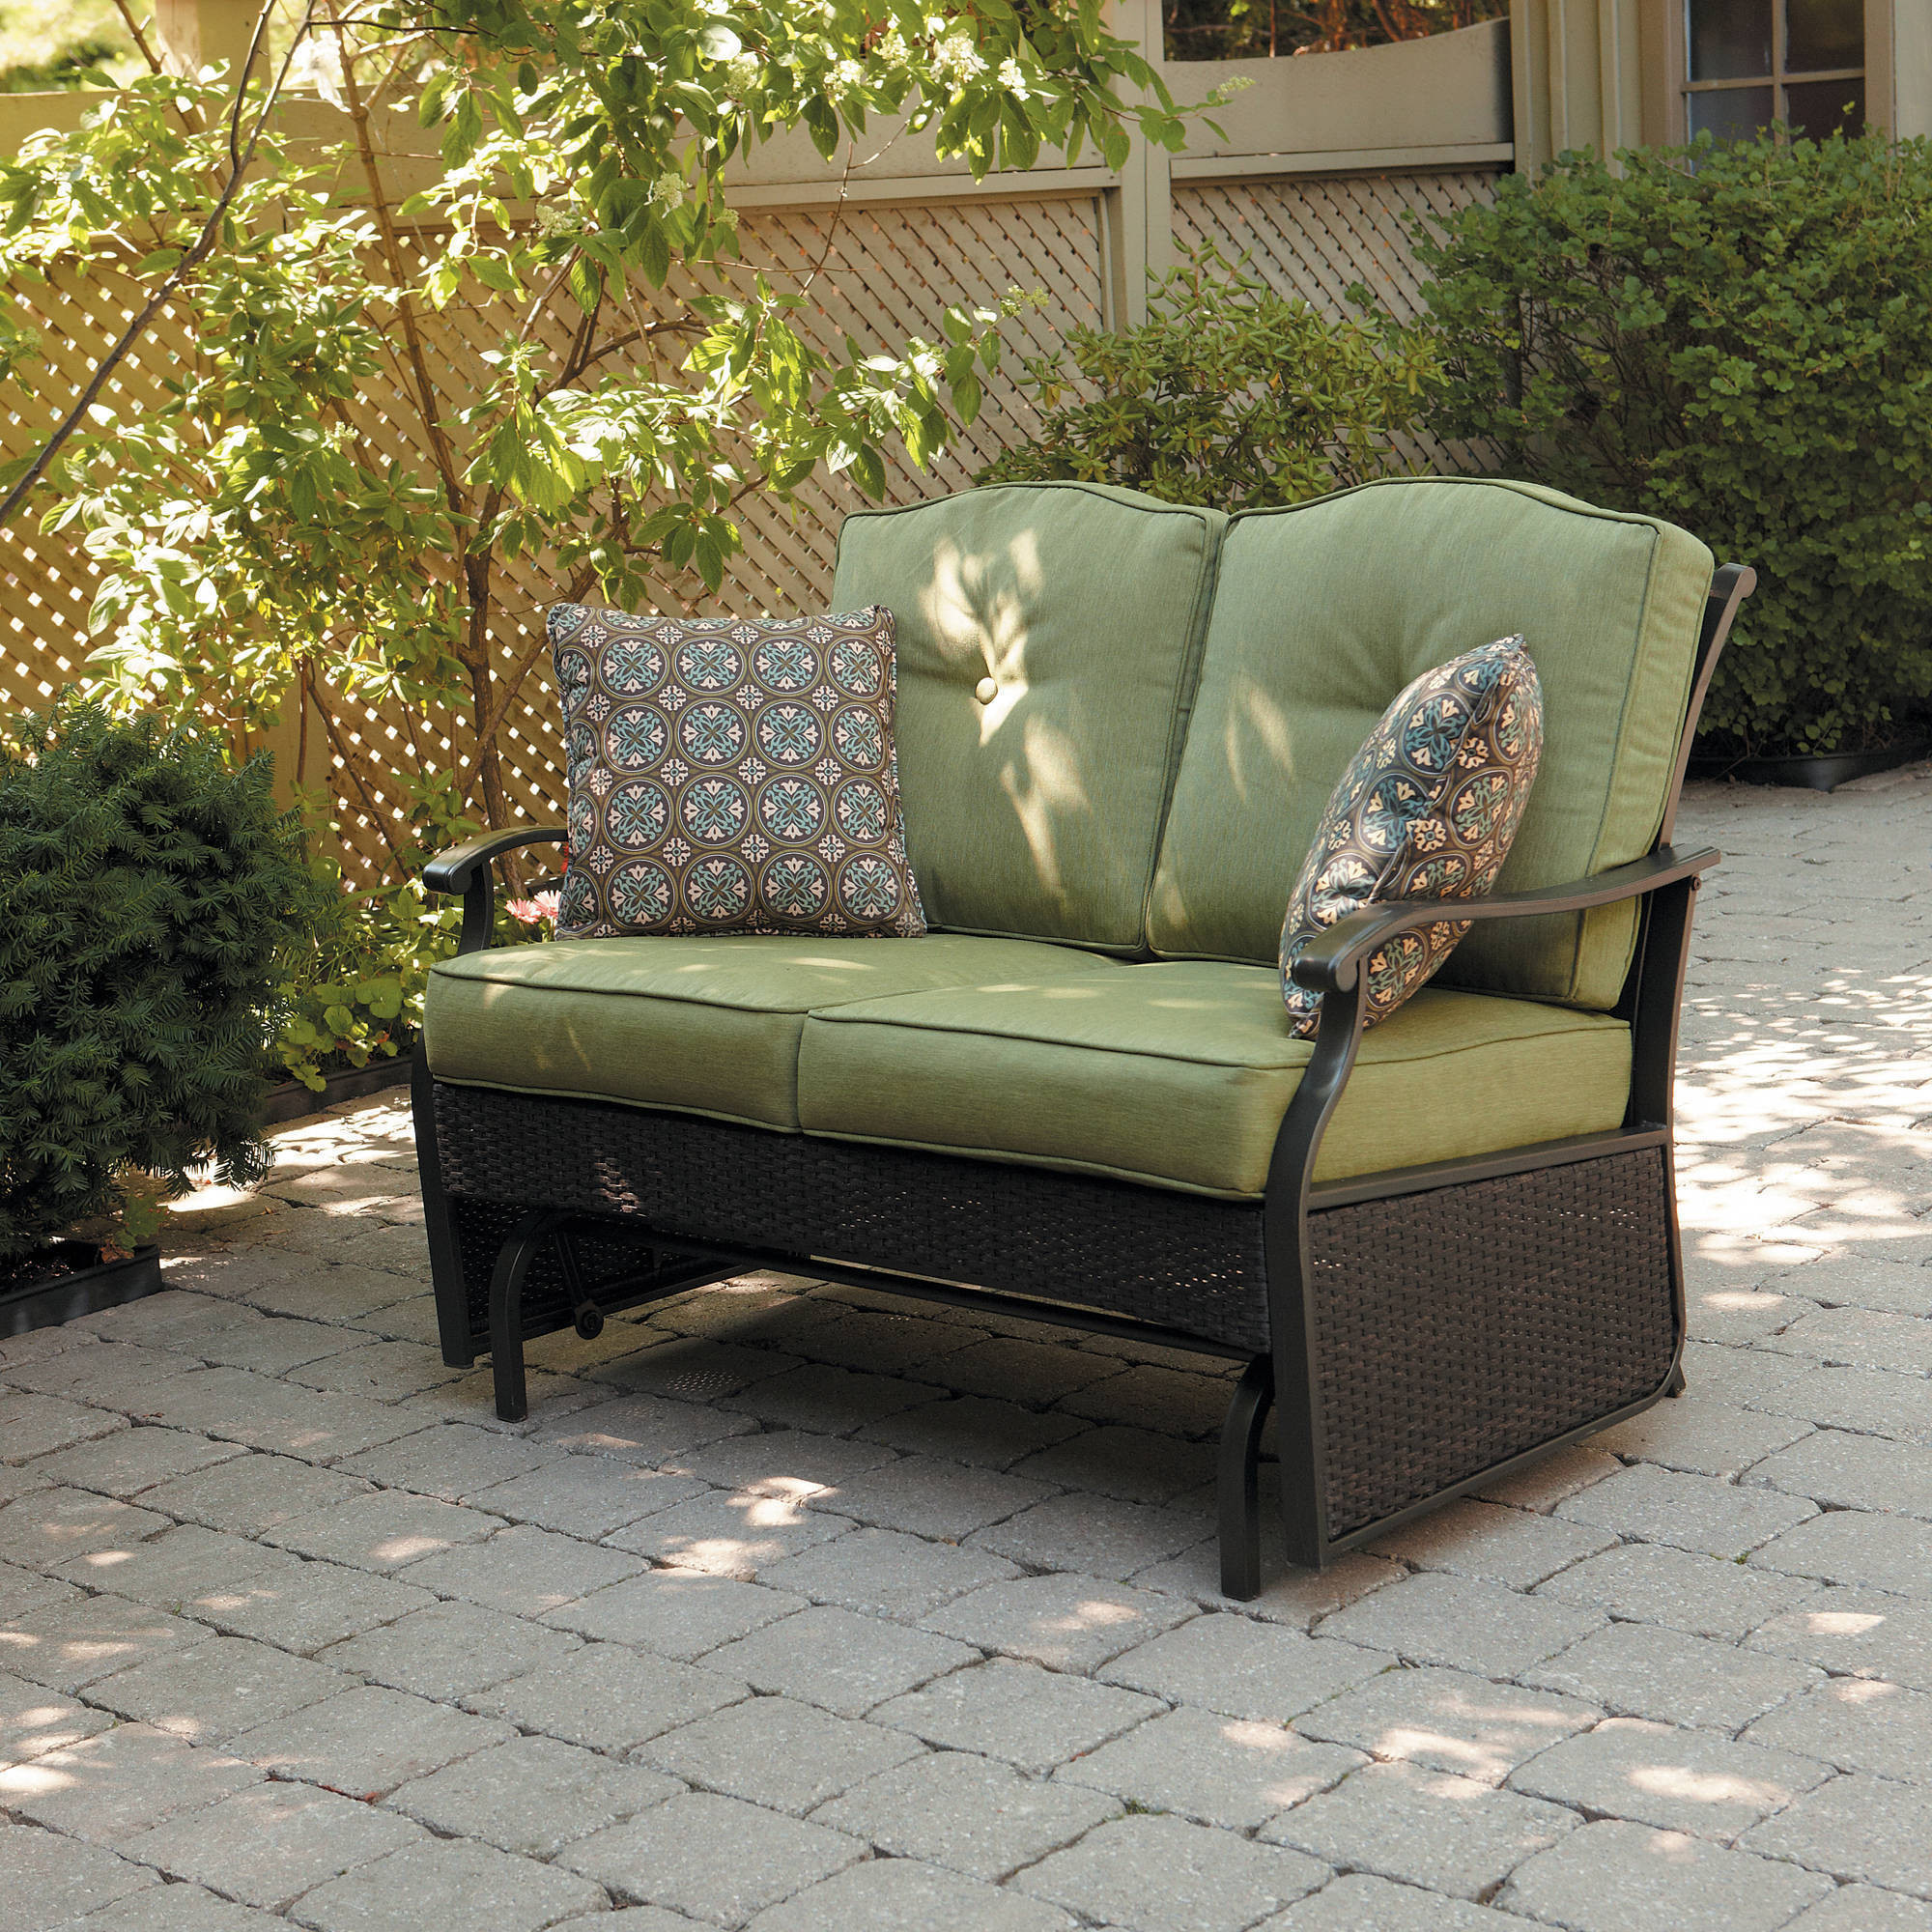 Best ideas about Patio Furniture Walmart . Save or Pin Patio Chairs & Stools Walmart Now.